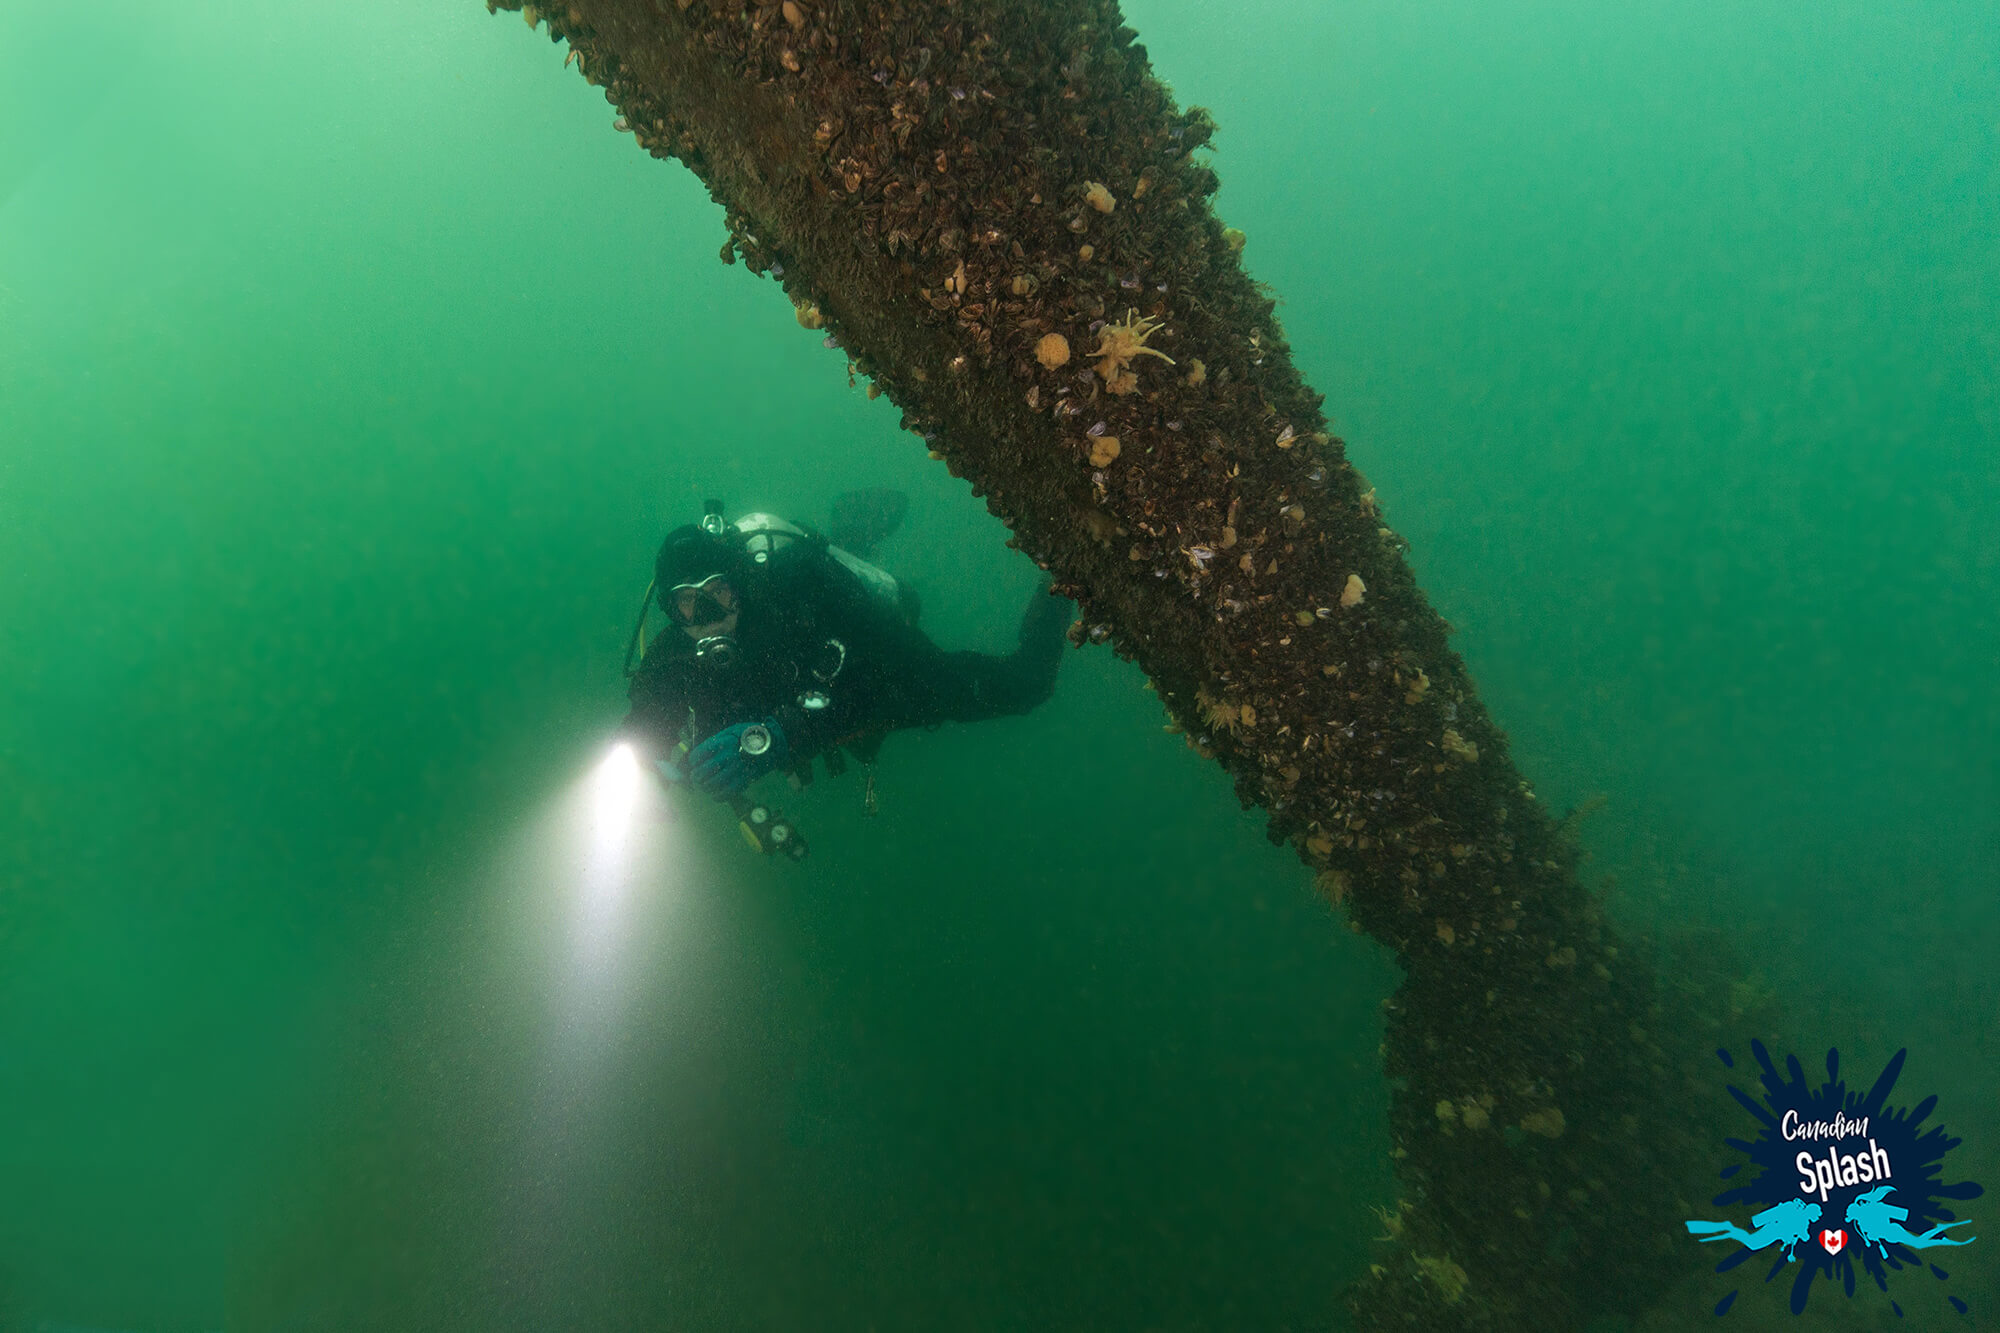 The Rich Green Plankton Filled Water Of The Saint Lawrence Seaway In Brockville, Ontario, Scuba Diving Canada